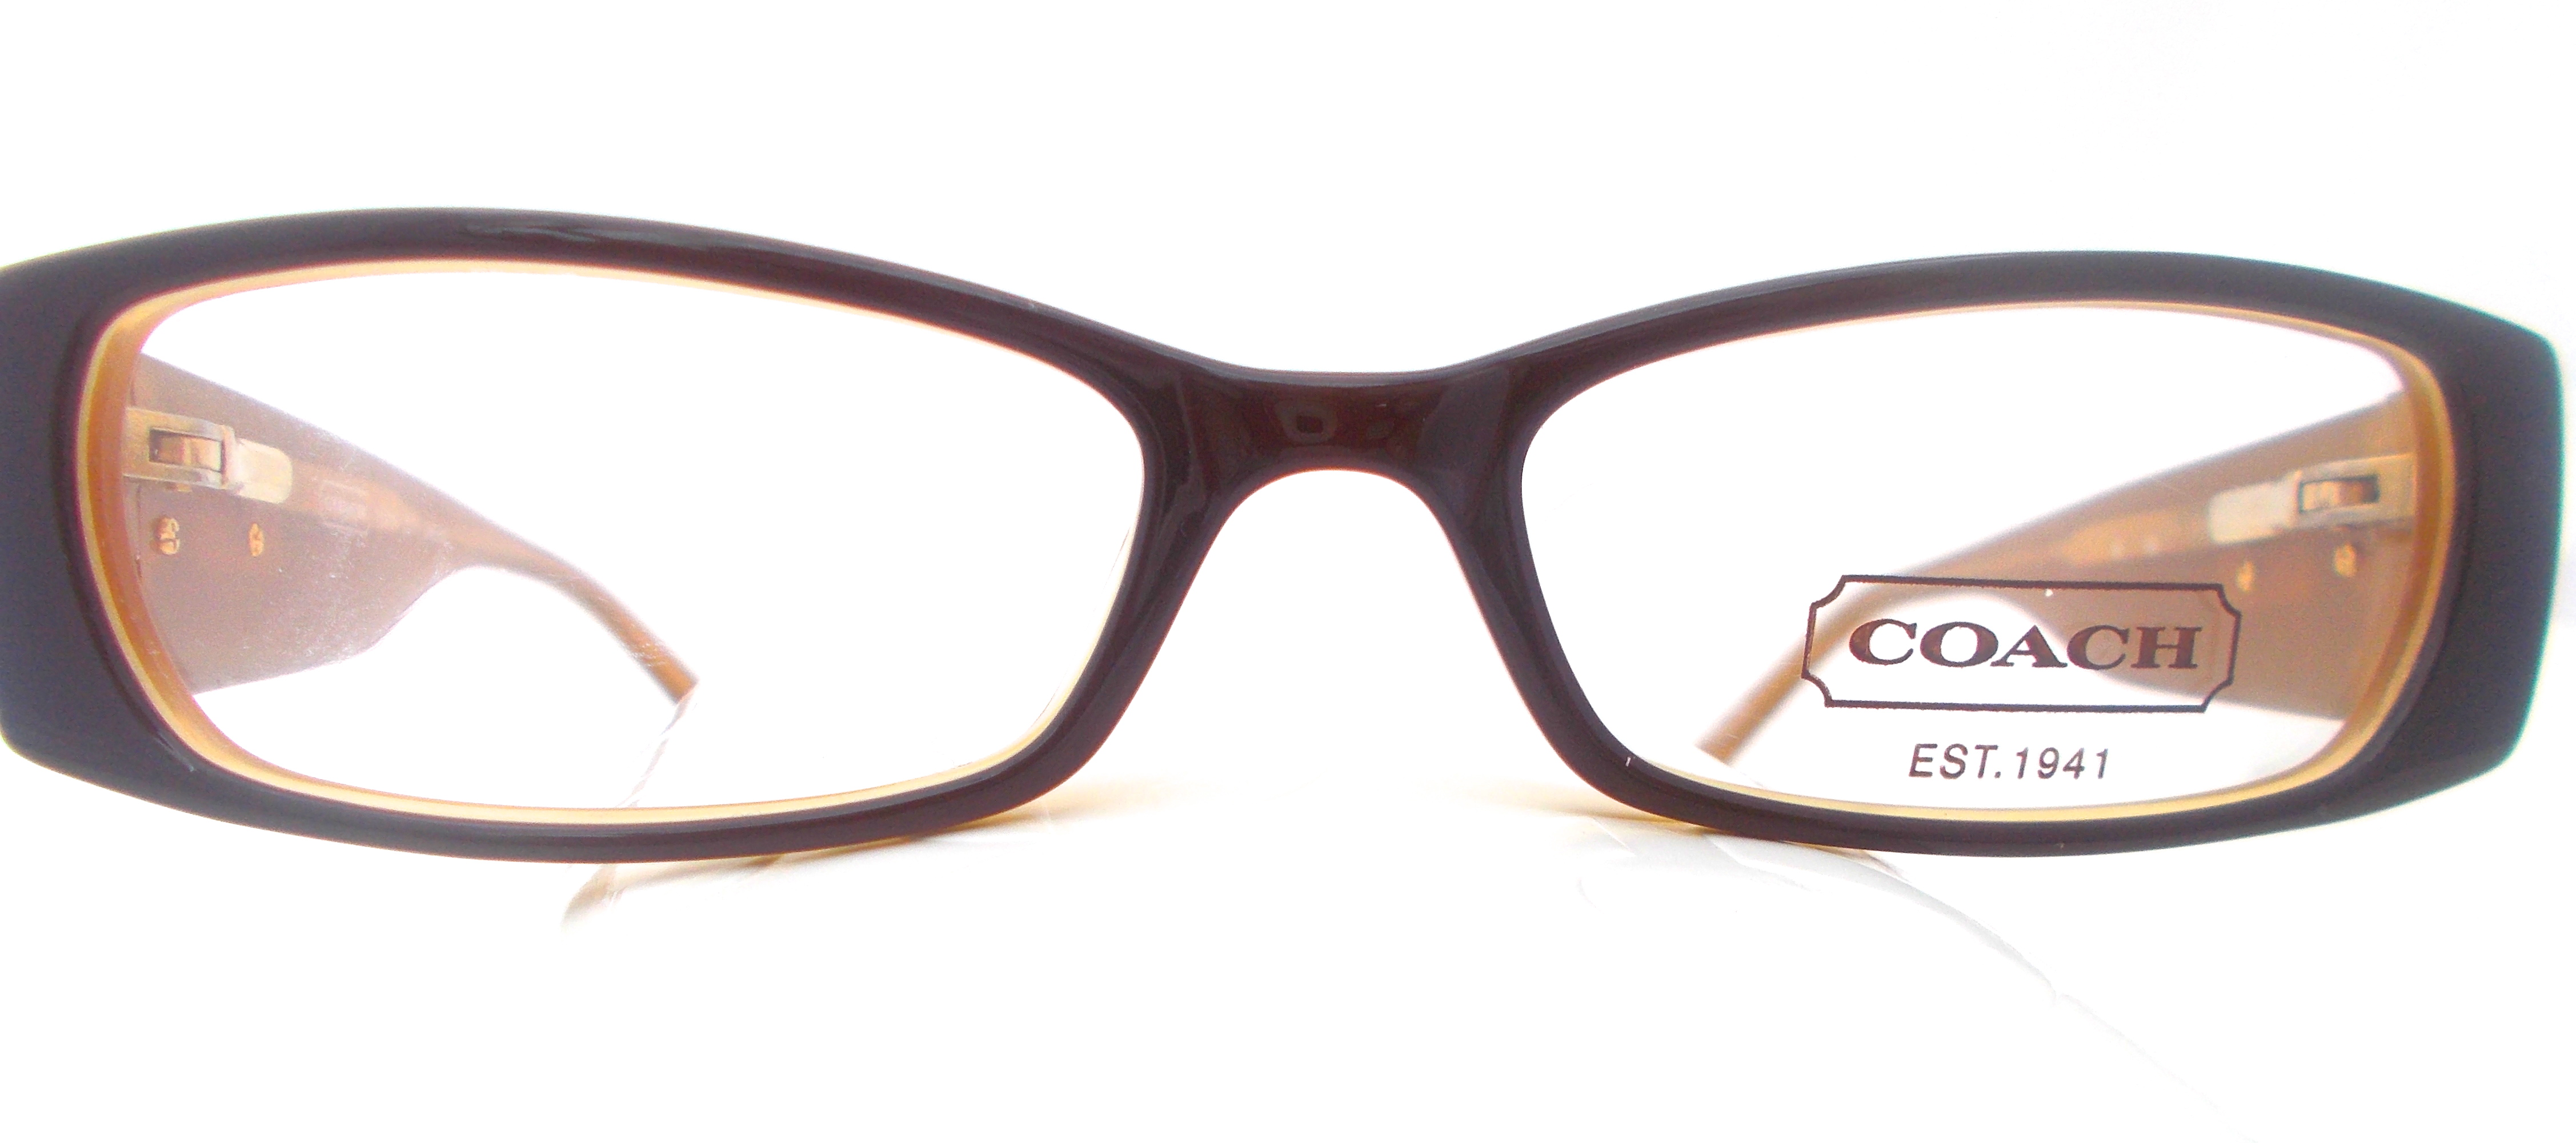 Coach Outlet Eyeglass Frames : H&S Optical Coach Womens Eyeglasses Ileana 2017 Brown ...